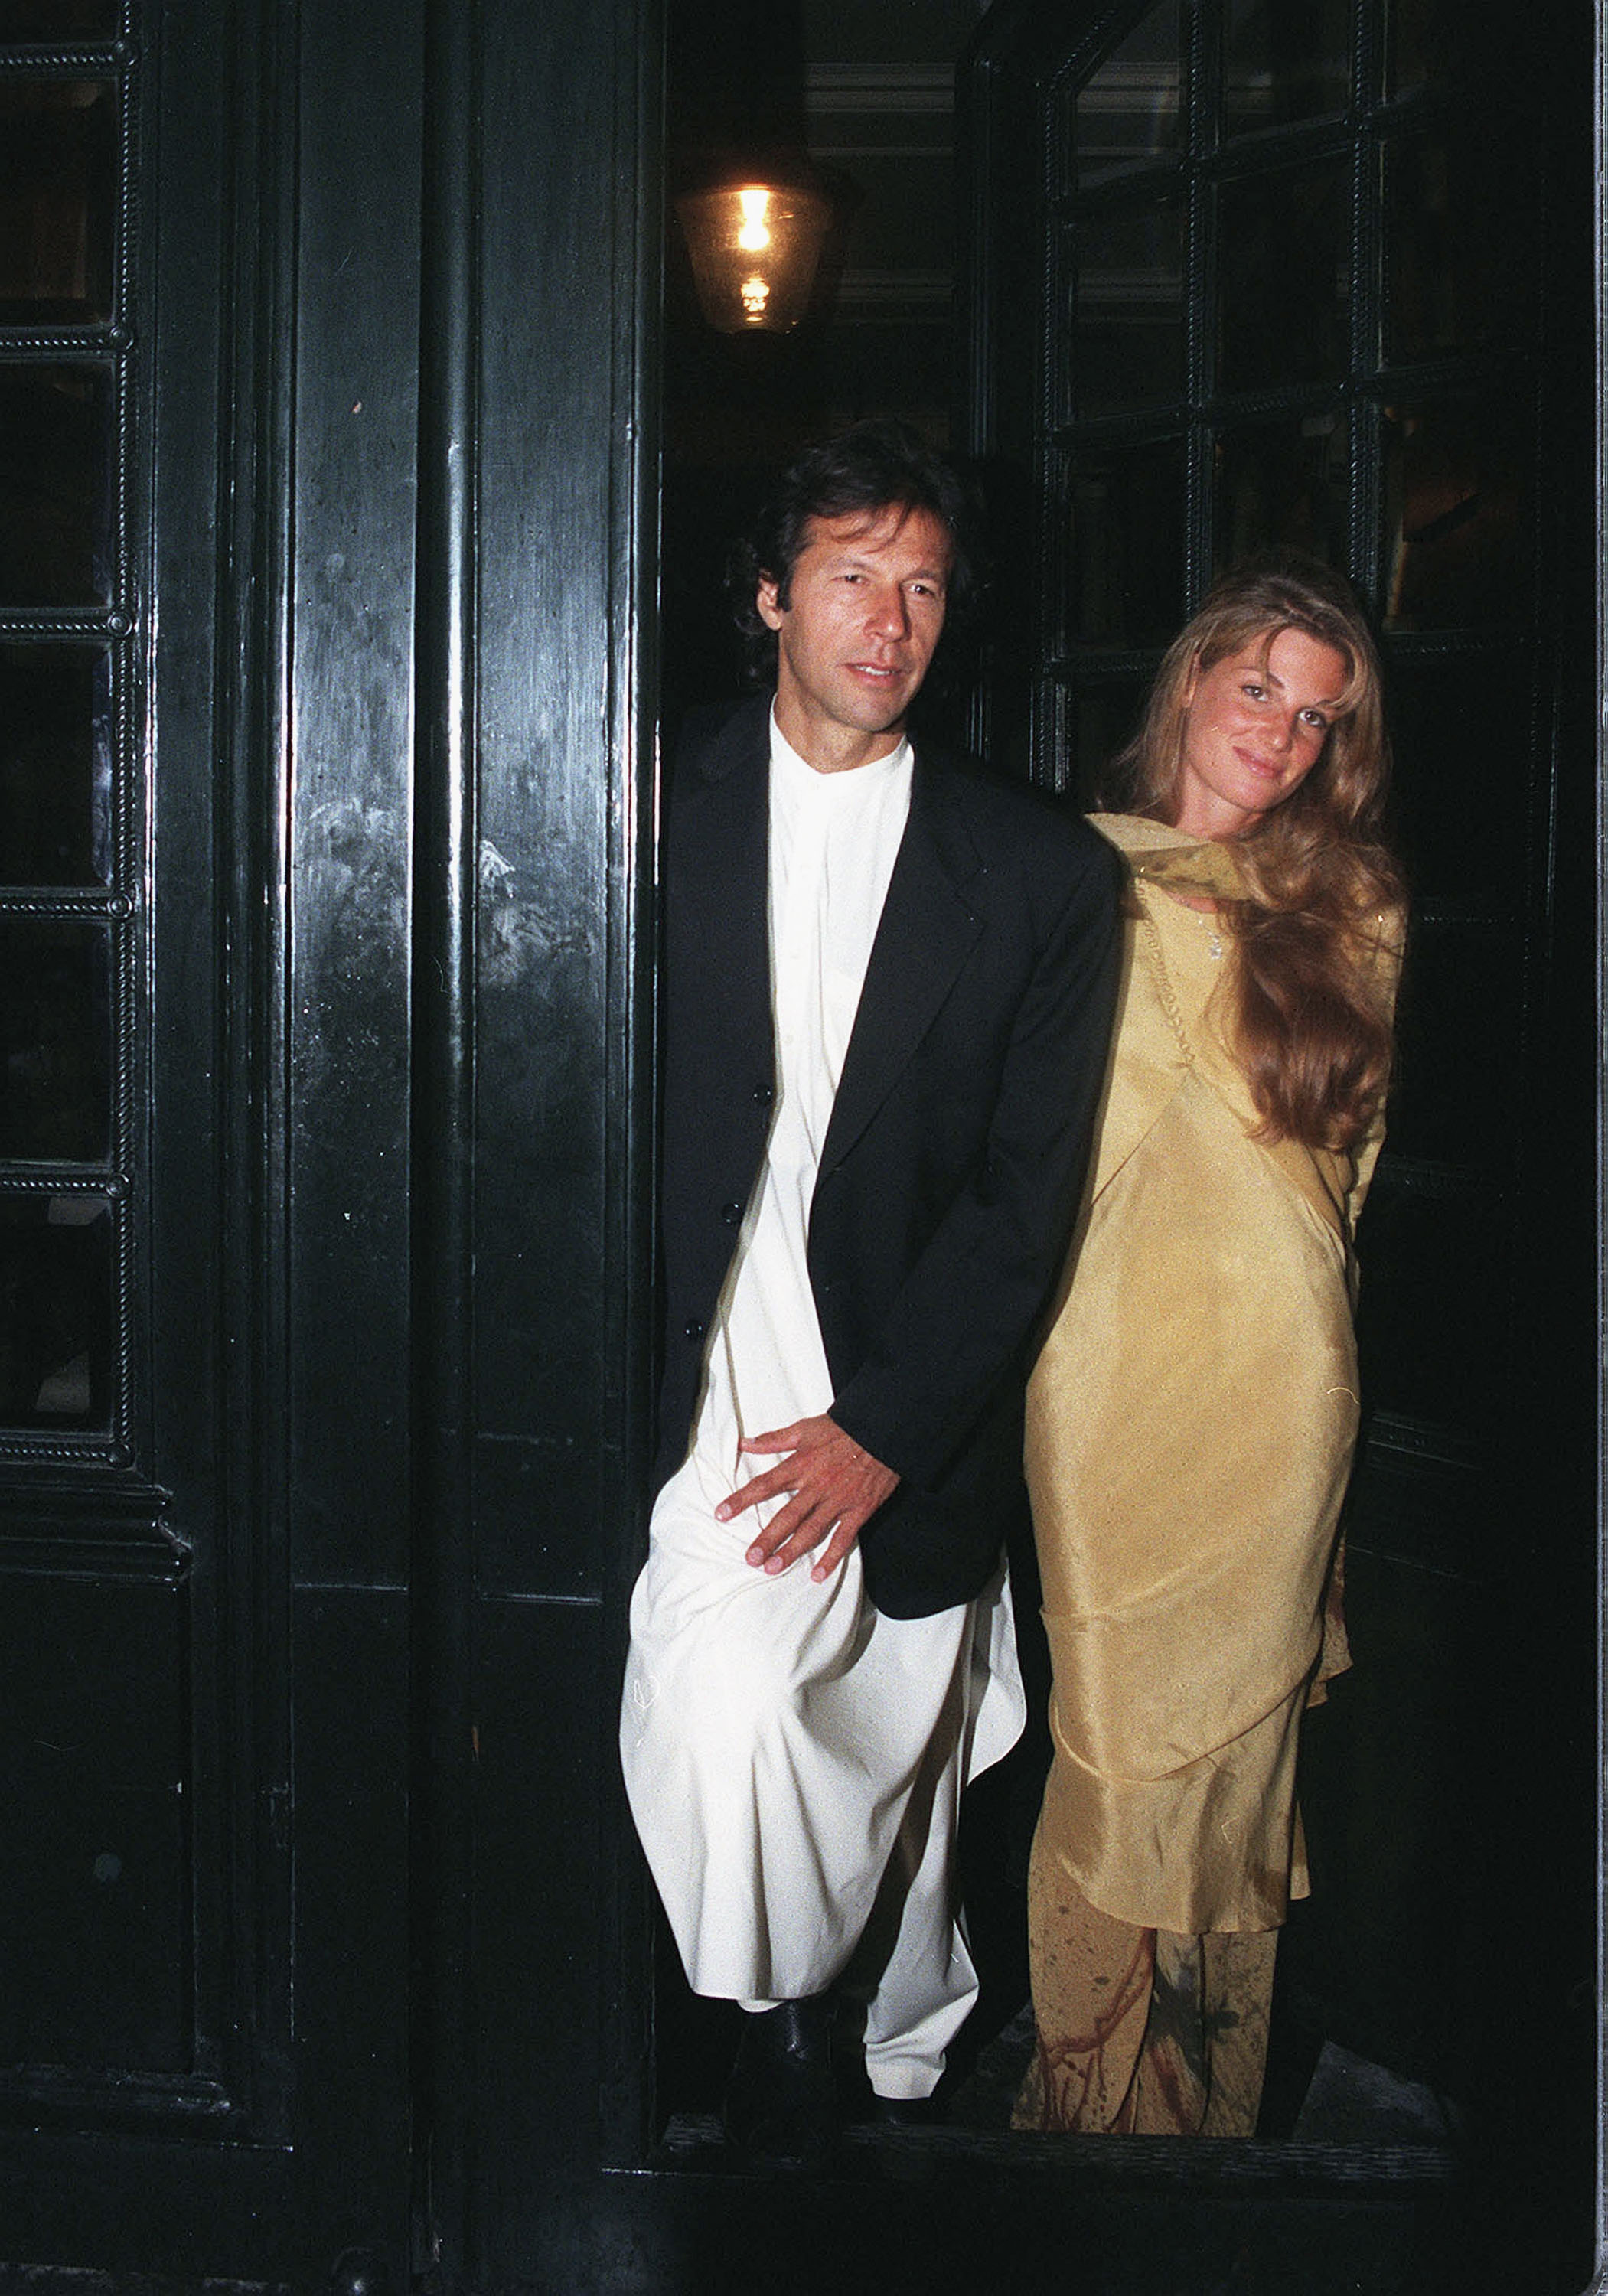 Imran Khan and the Sydney University maiden - NZ Herald